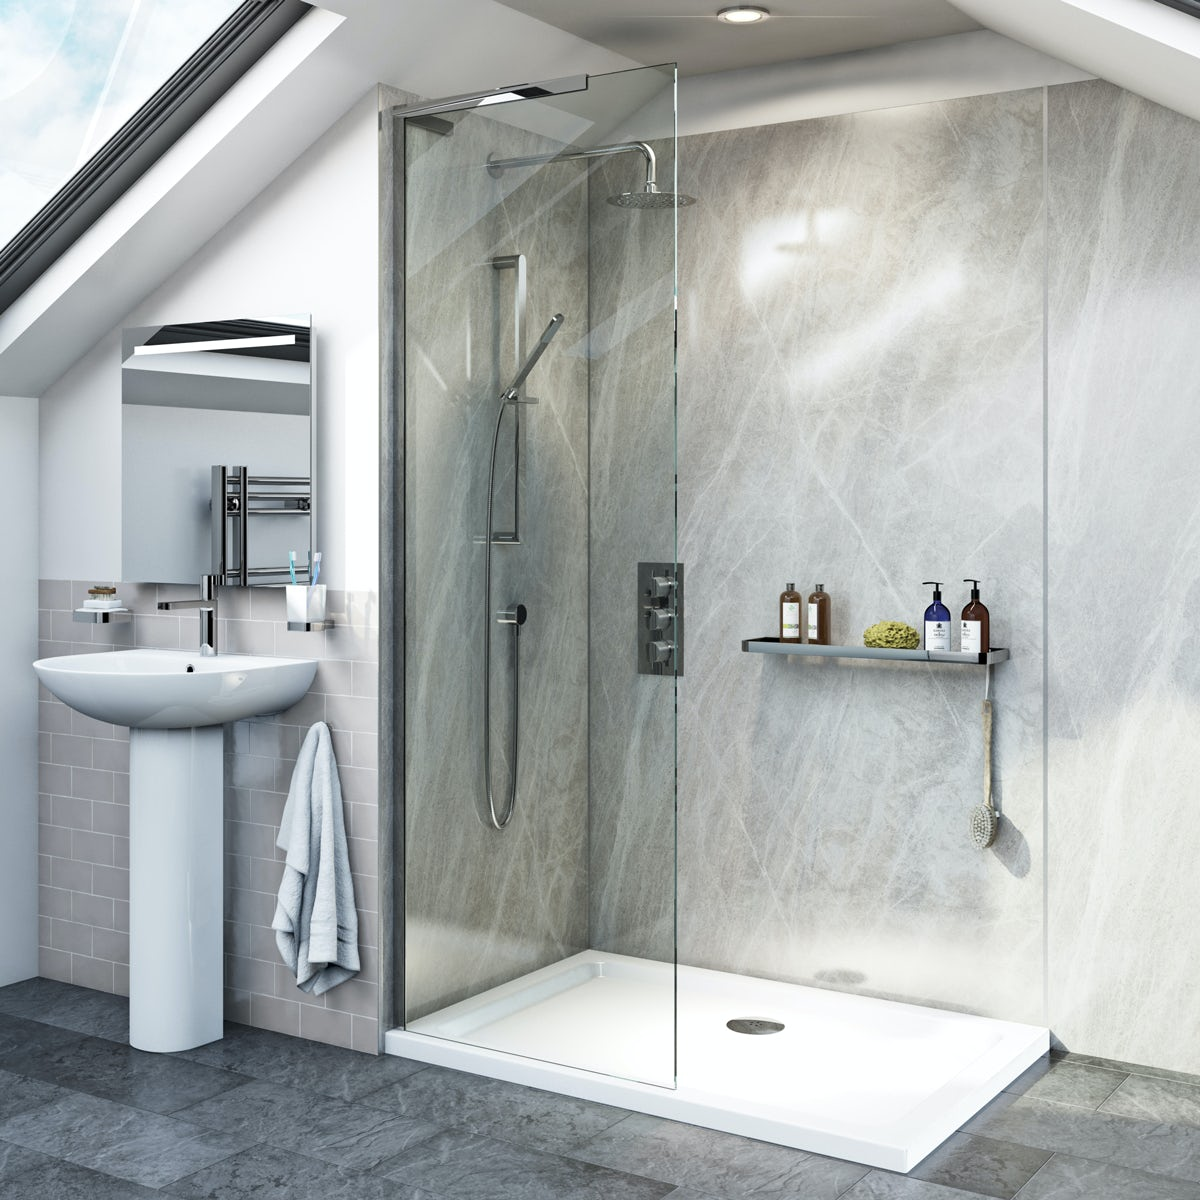 Mode 8mm walk in glass panel pack with stone shower tray